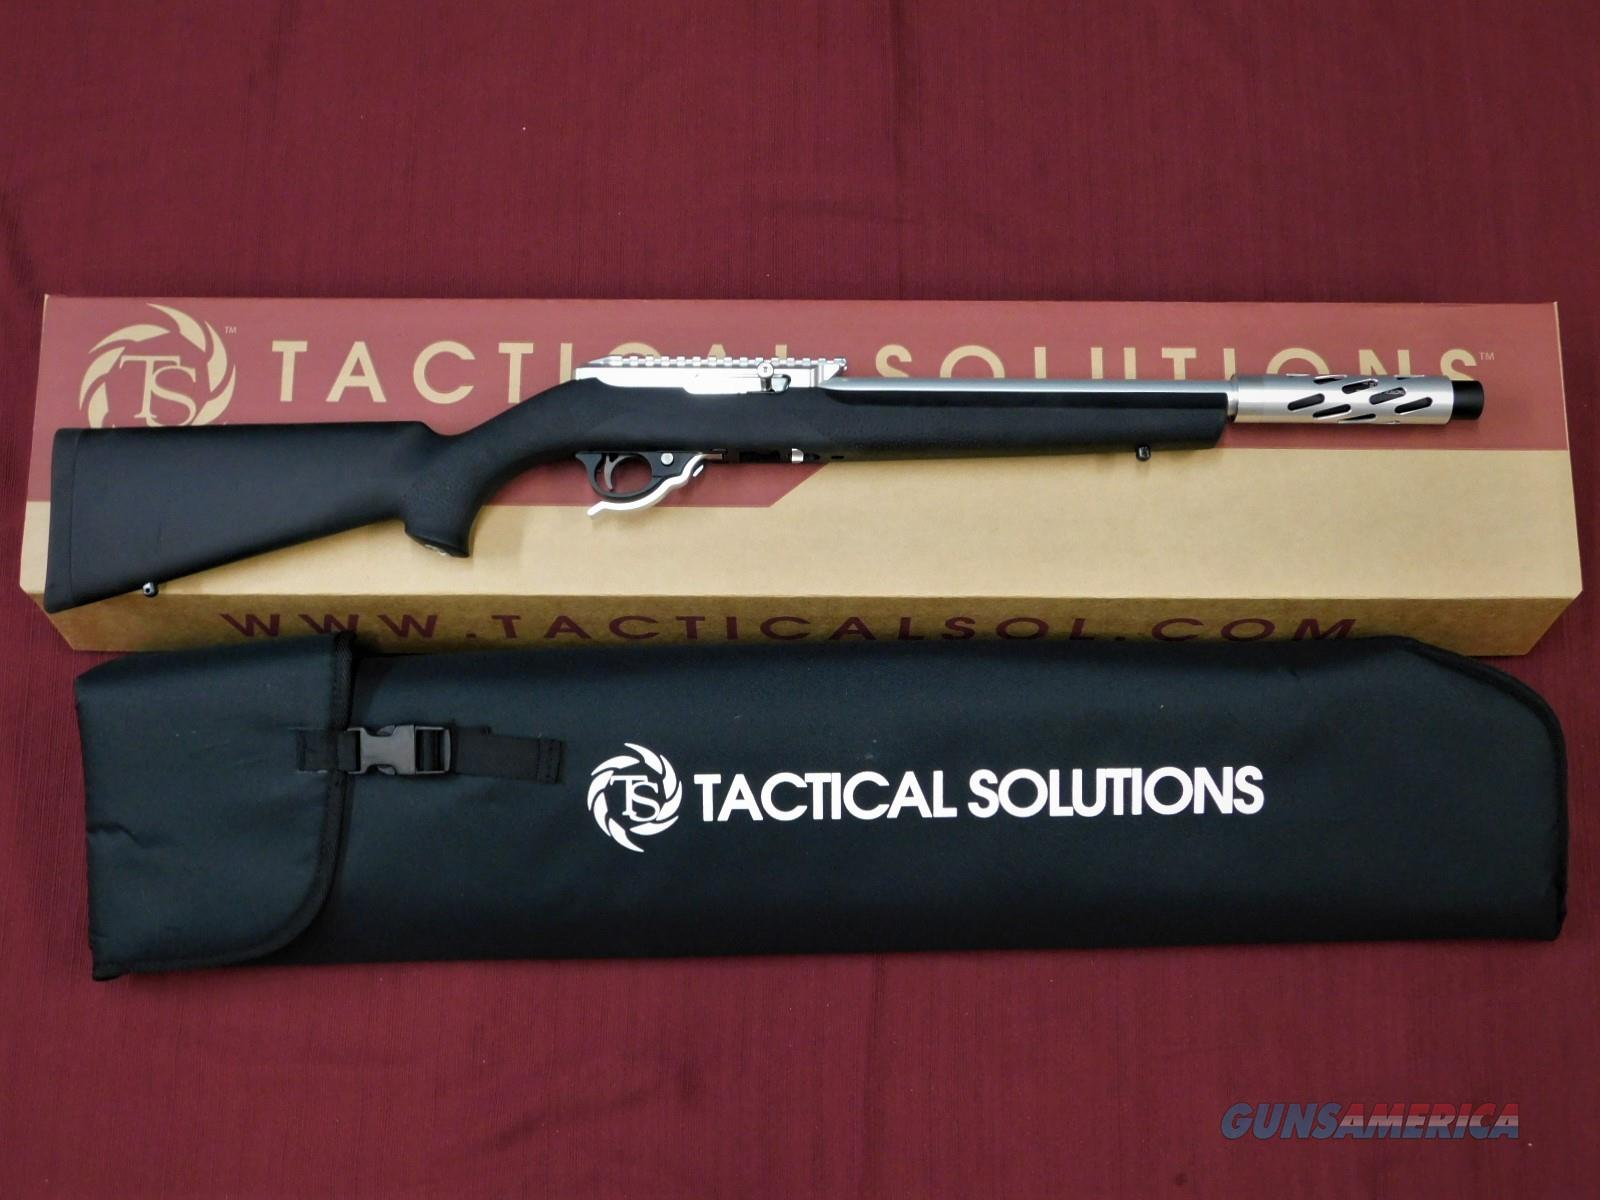 TACTICAL SOLUTIONS X-RING SBX SILVER HOGUE BLACK .22 LR  Guns > Rifles > Ruger Rifles > 10-22